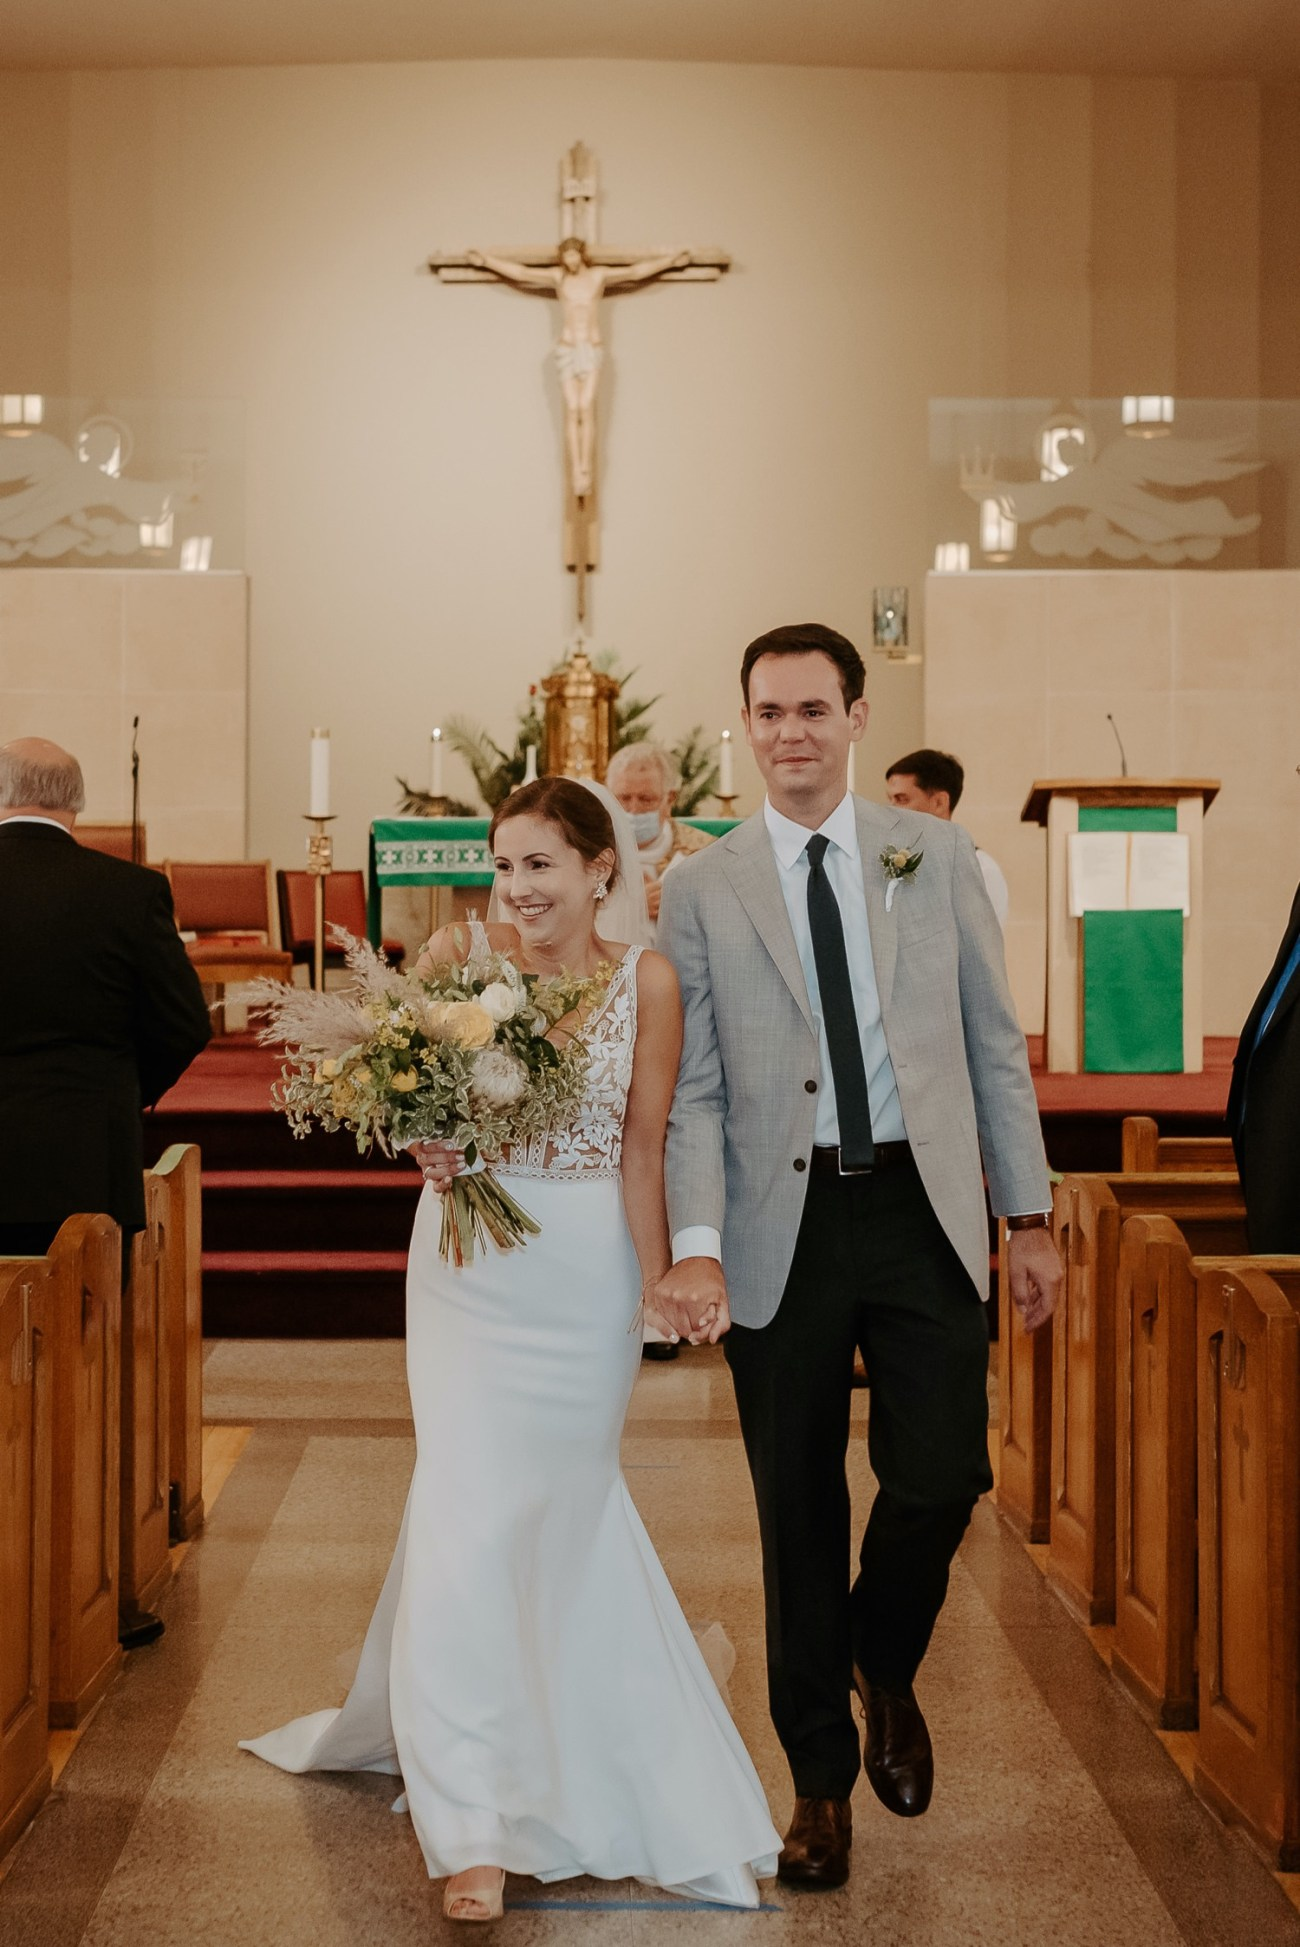 Bride and Groom walking down the aisle at their Church Ceremony in New jersey. Antique Loft Hoboken Wedding New Jersey Wedding Photographer Anais Possamai Photography 032